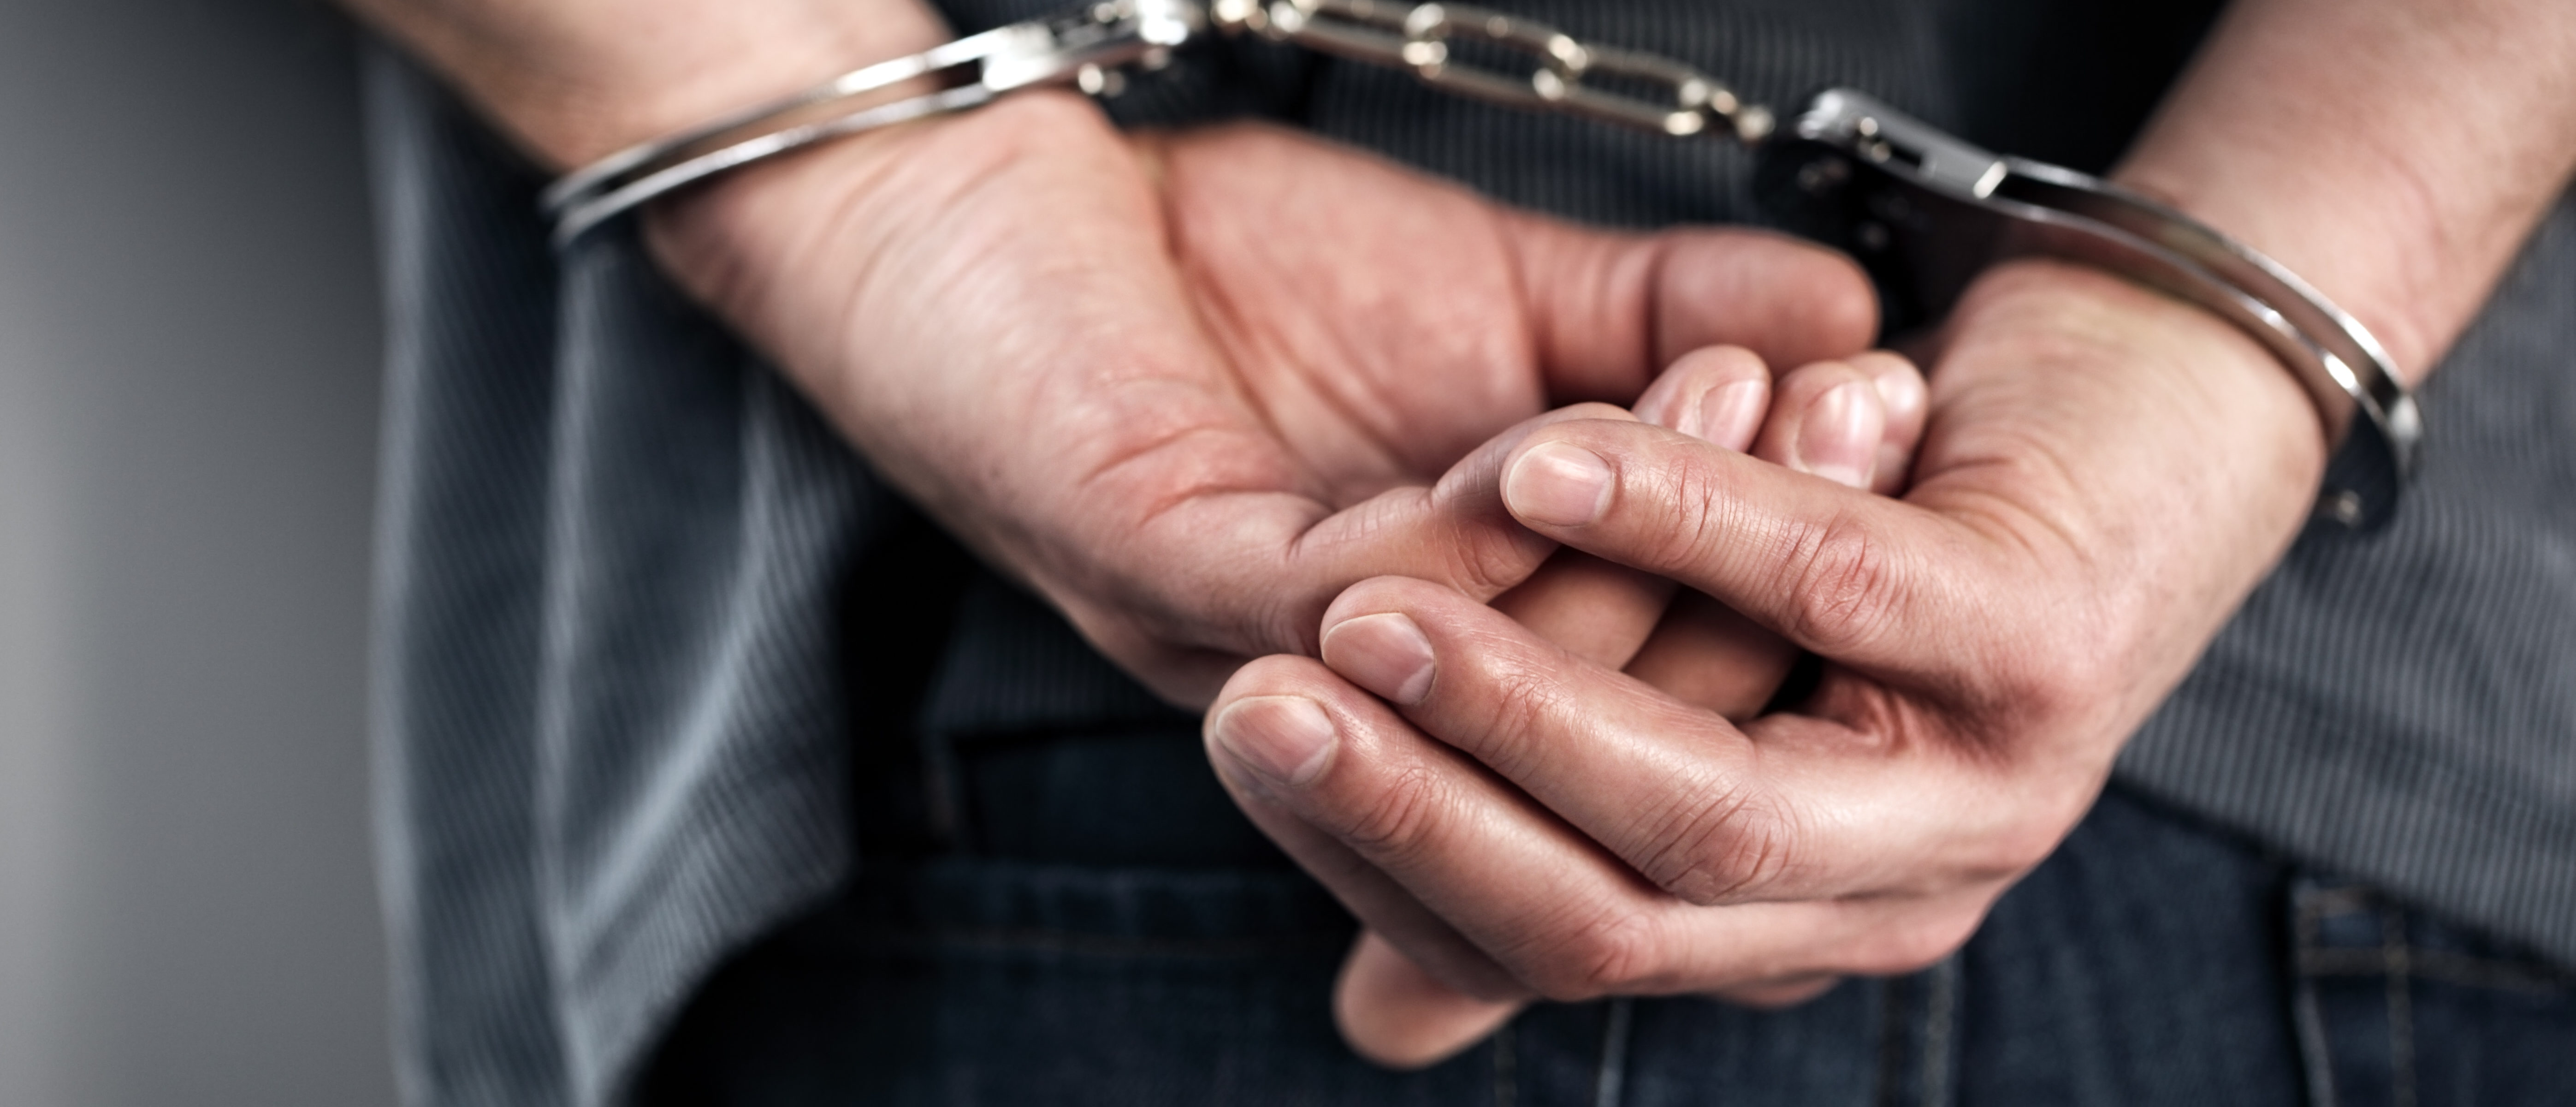 Arrested man in handcuffs with hands behind back. (Shutterstock/Brian A Jackson)